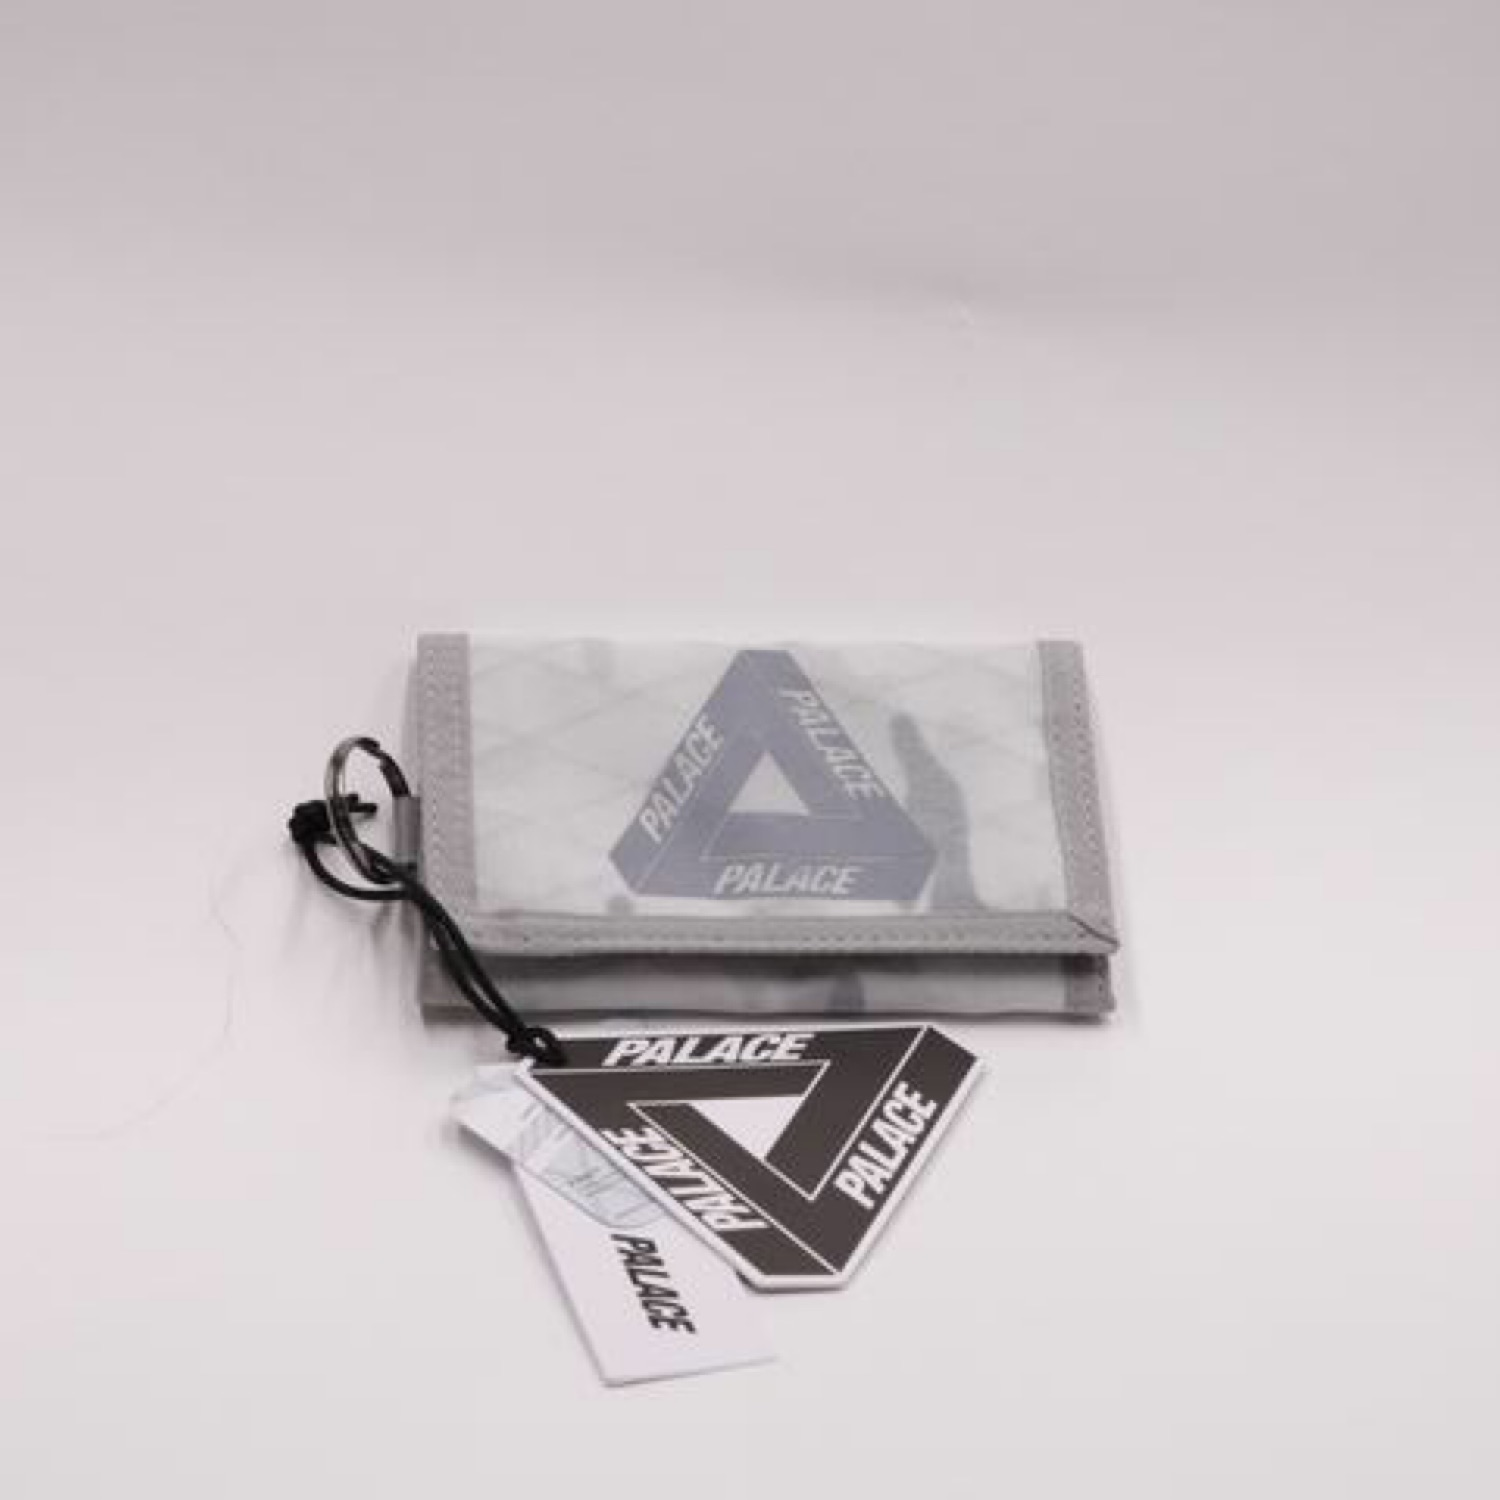 Palace Trifold Wallet